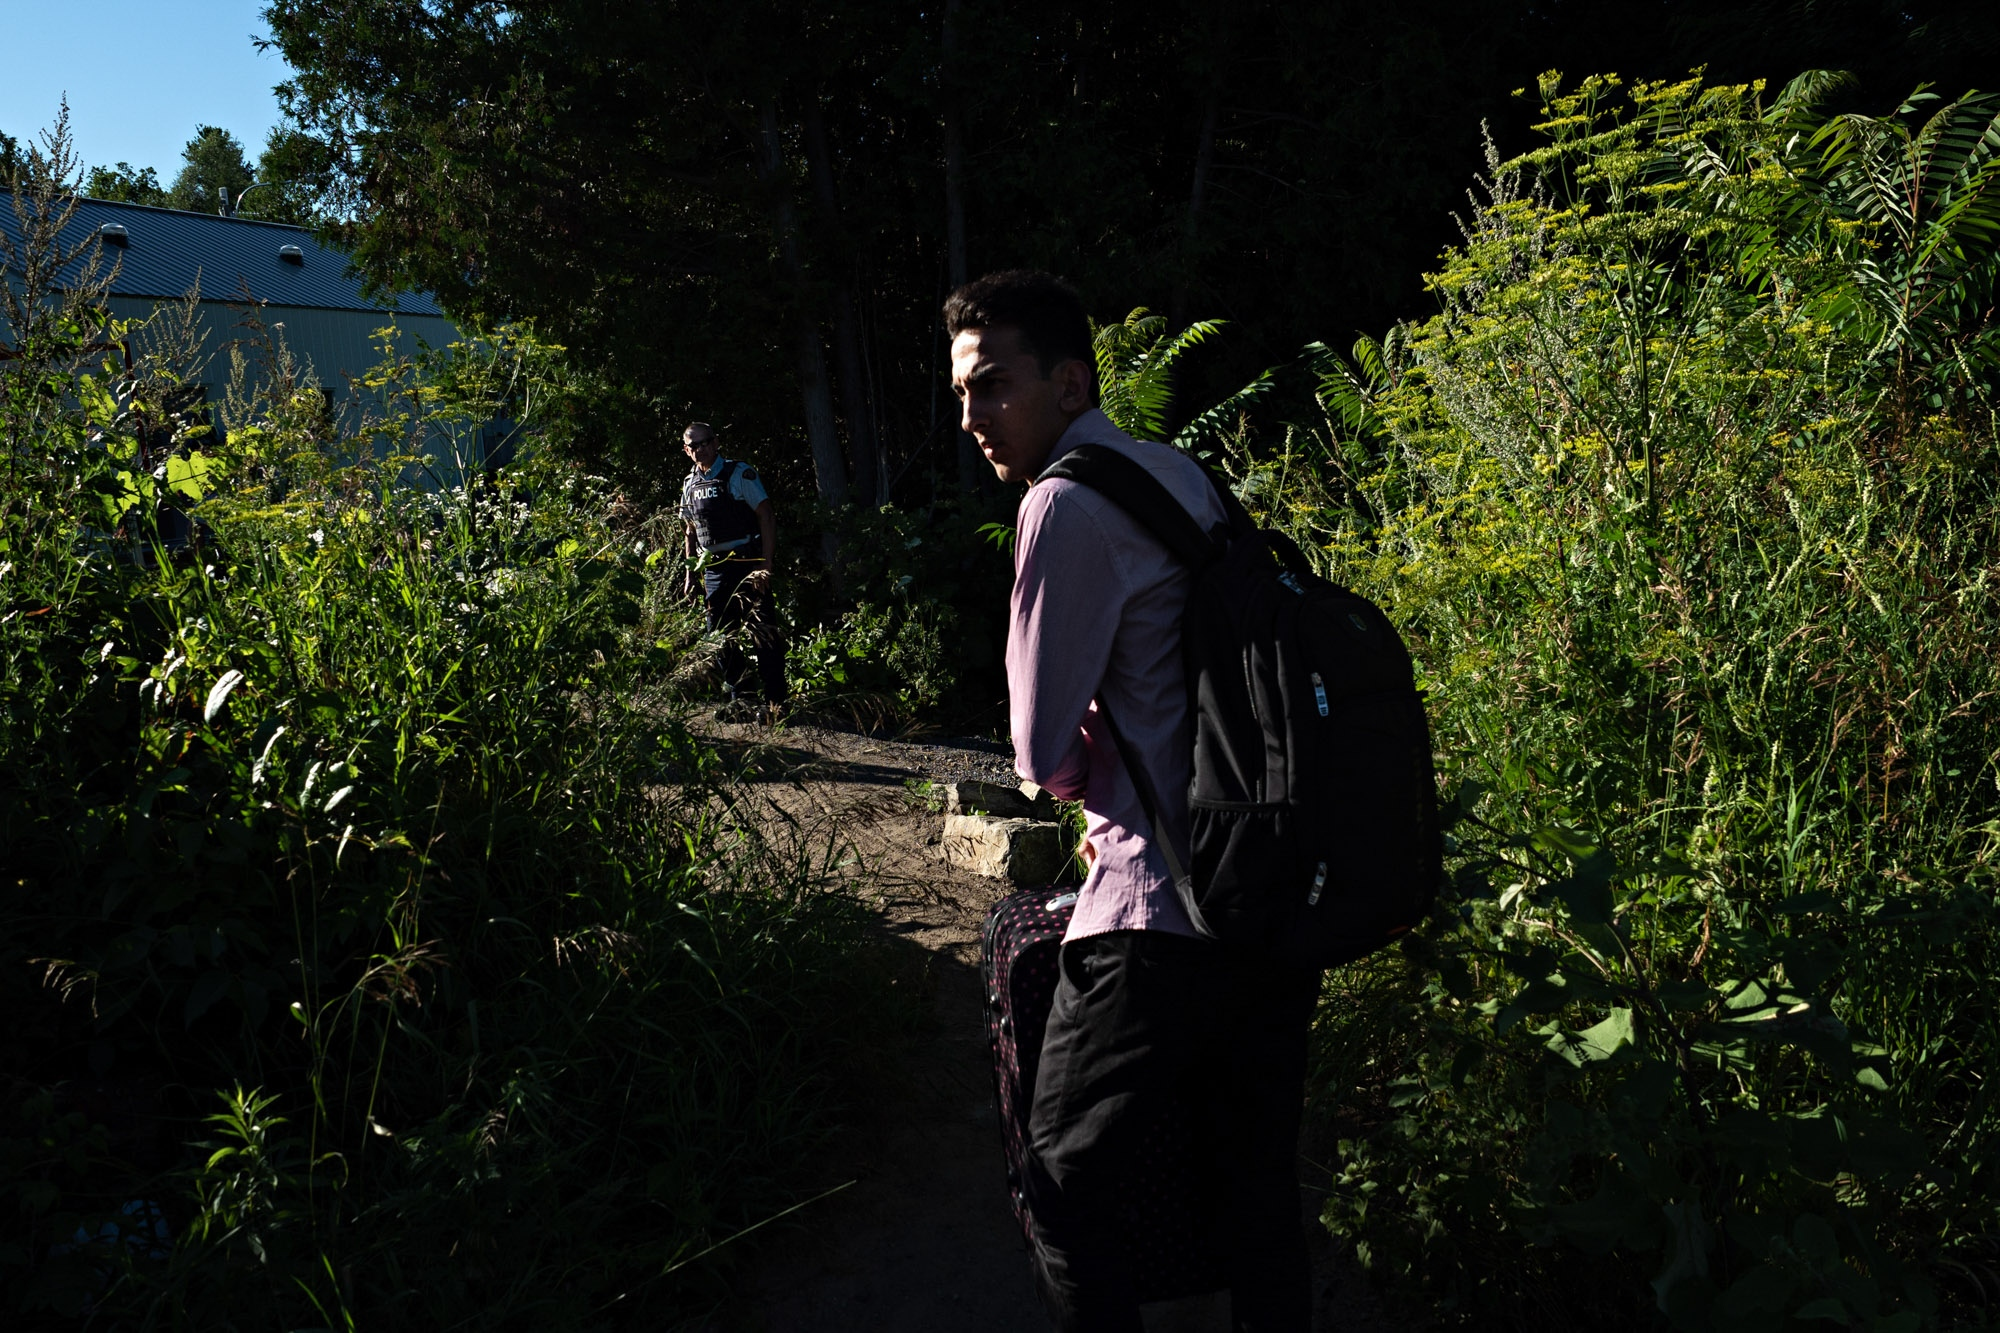 Omer Malik, 19, takes a last look back toward the United States before crossing illegally into Canada at the end of Roxham Road in Champlain, N.Y.